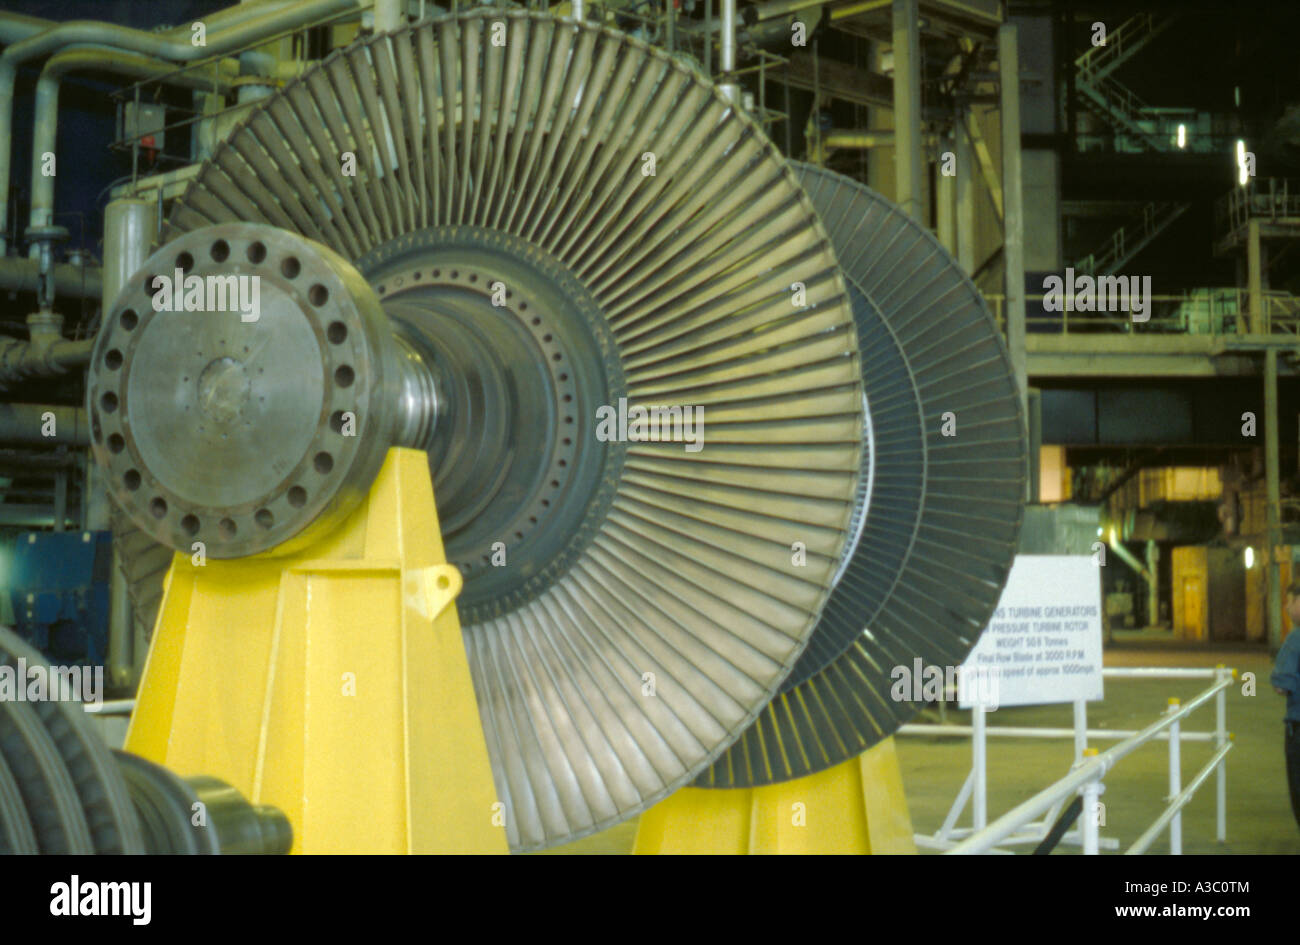 Steam Turbine Fan Blades Of A Parsons Turbine Generator